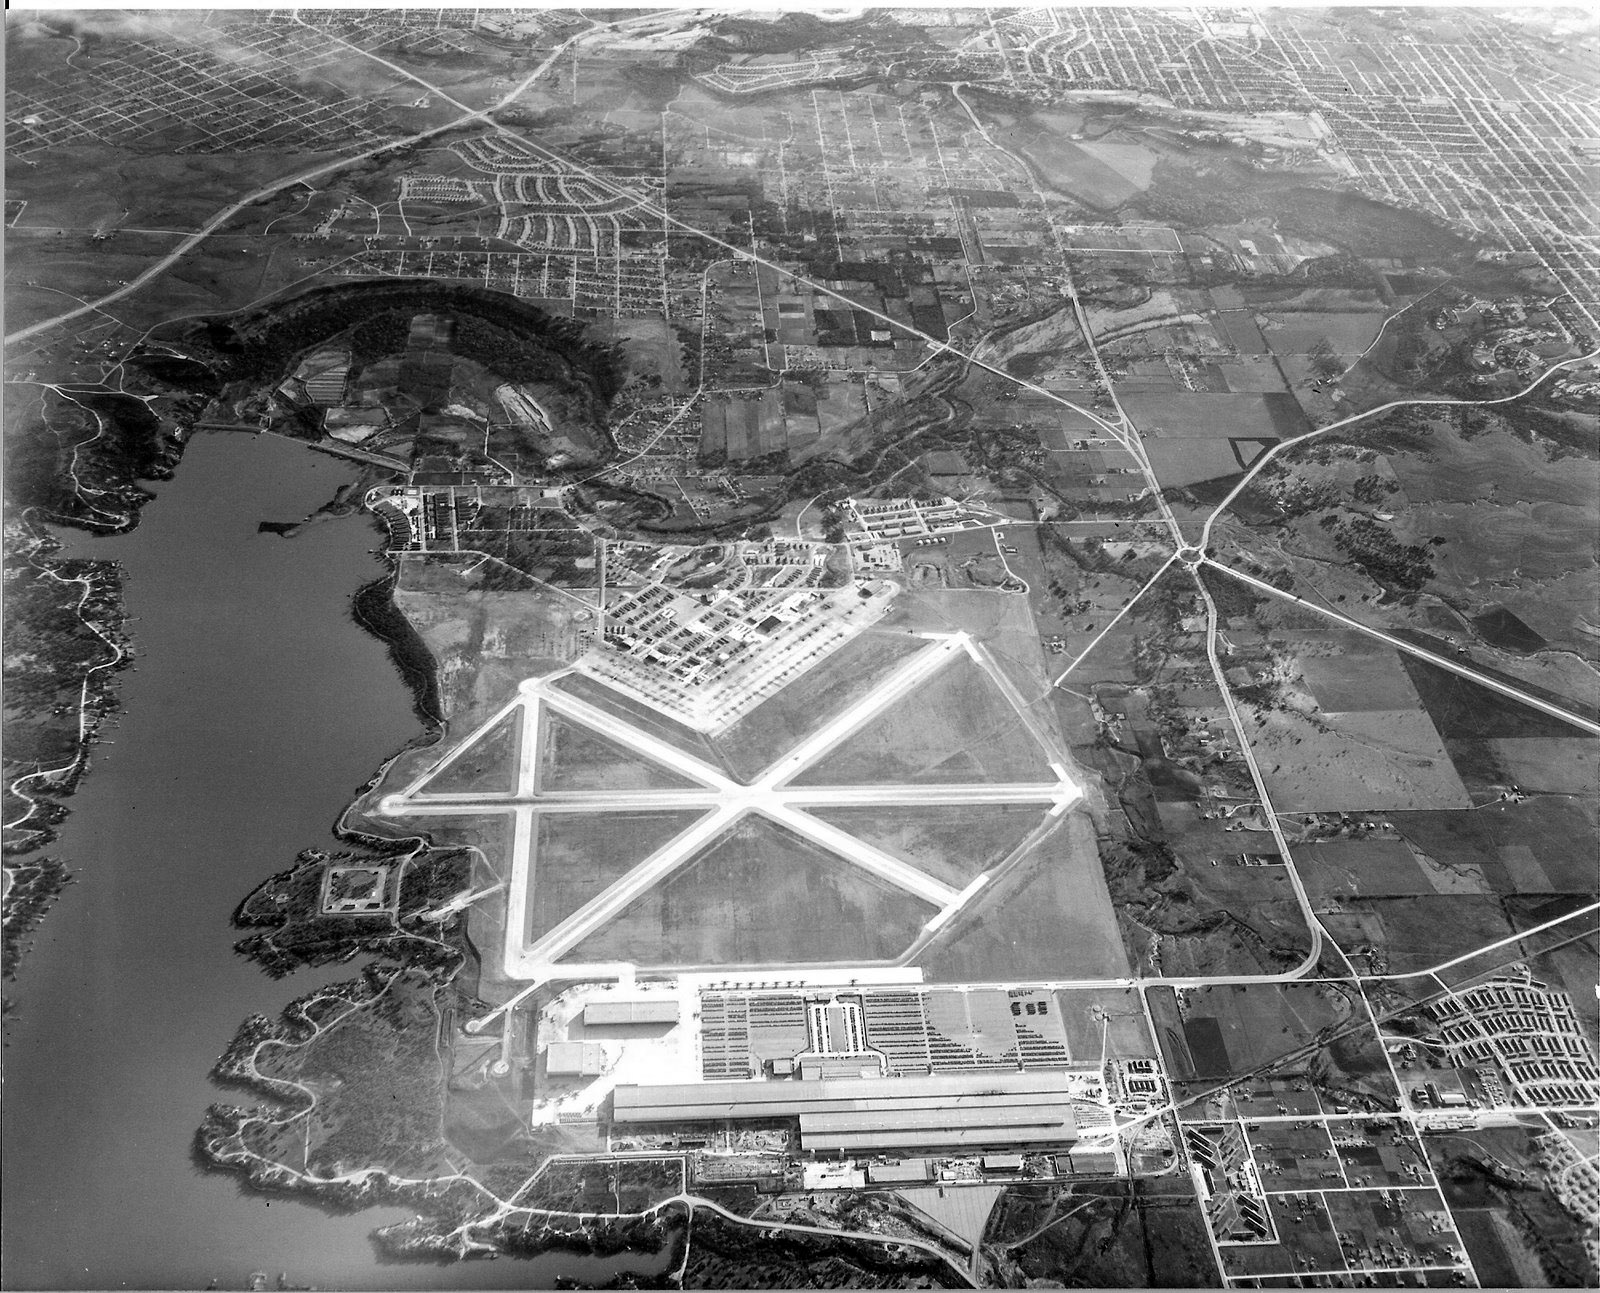 Ariel view of Convair plant and airfield 1942